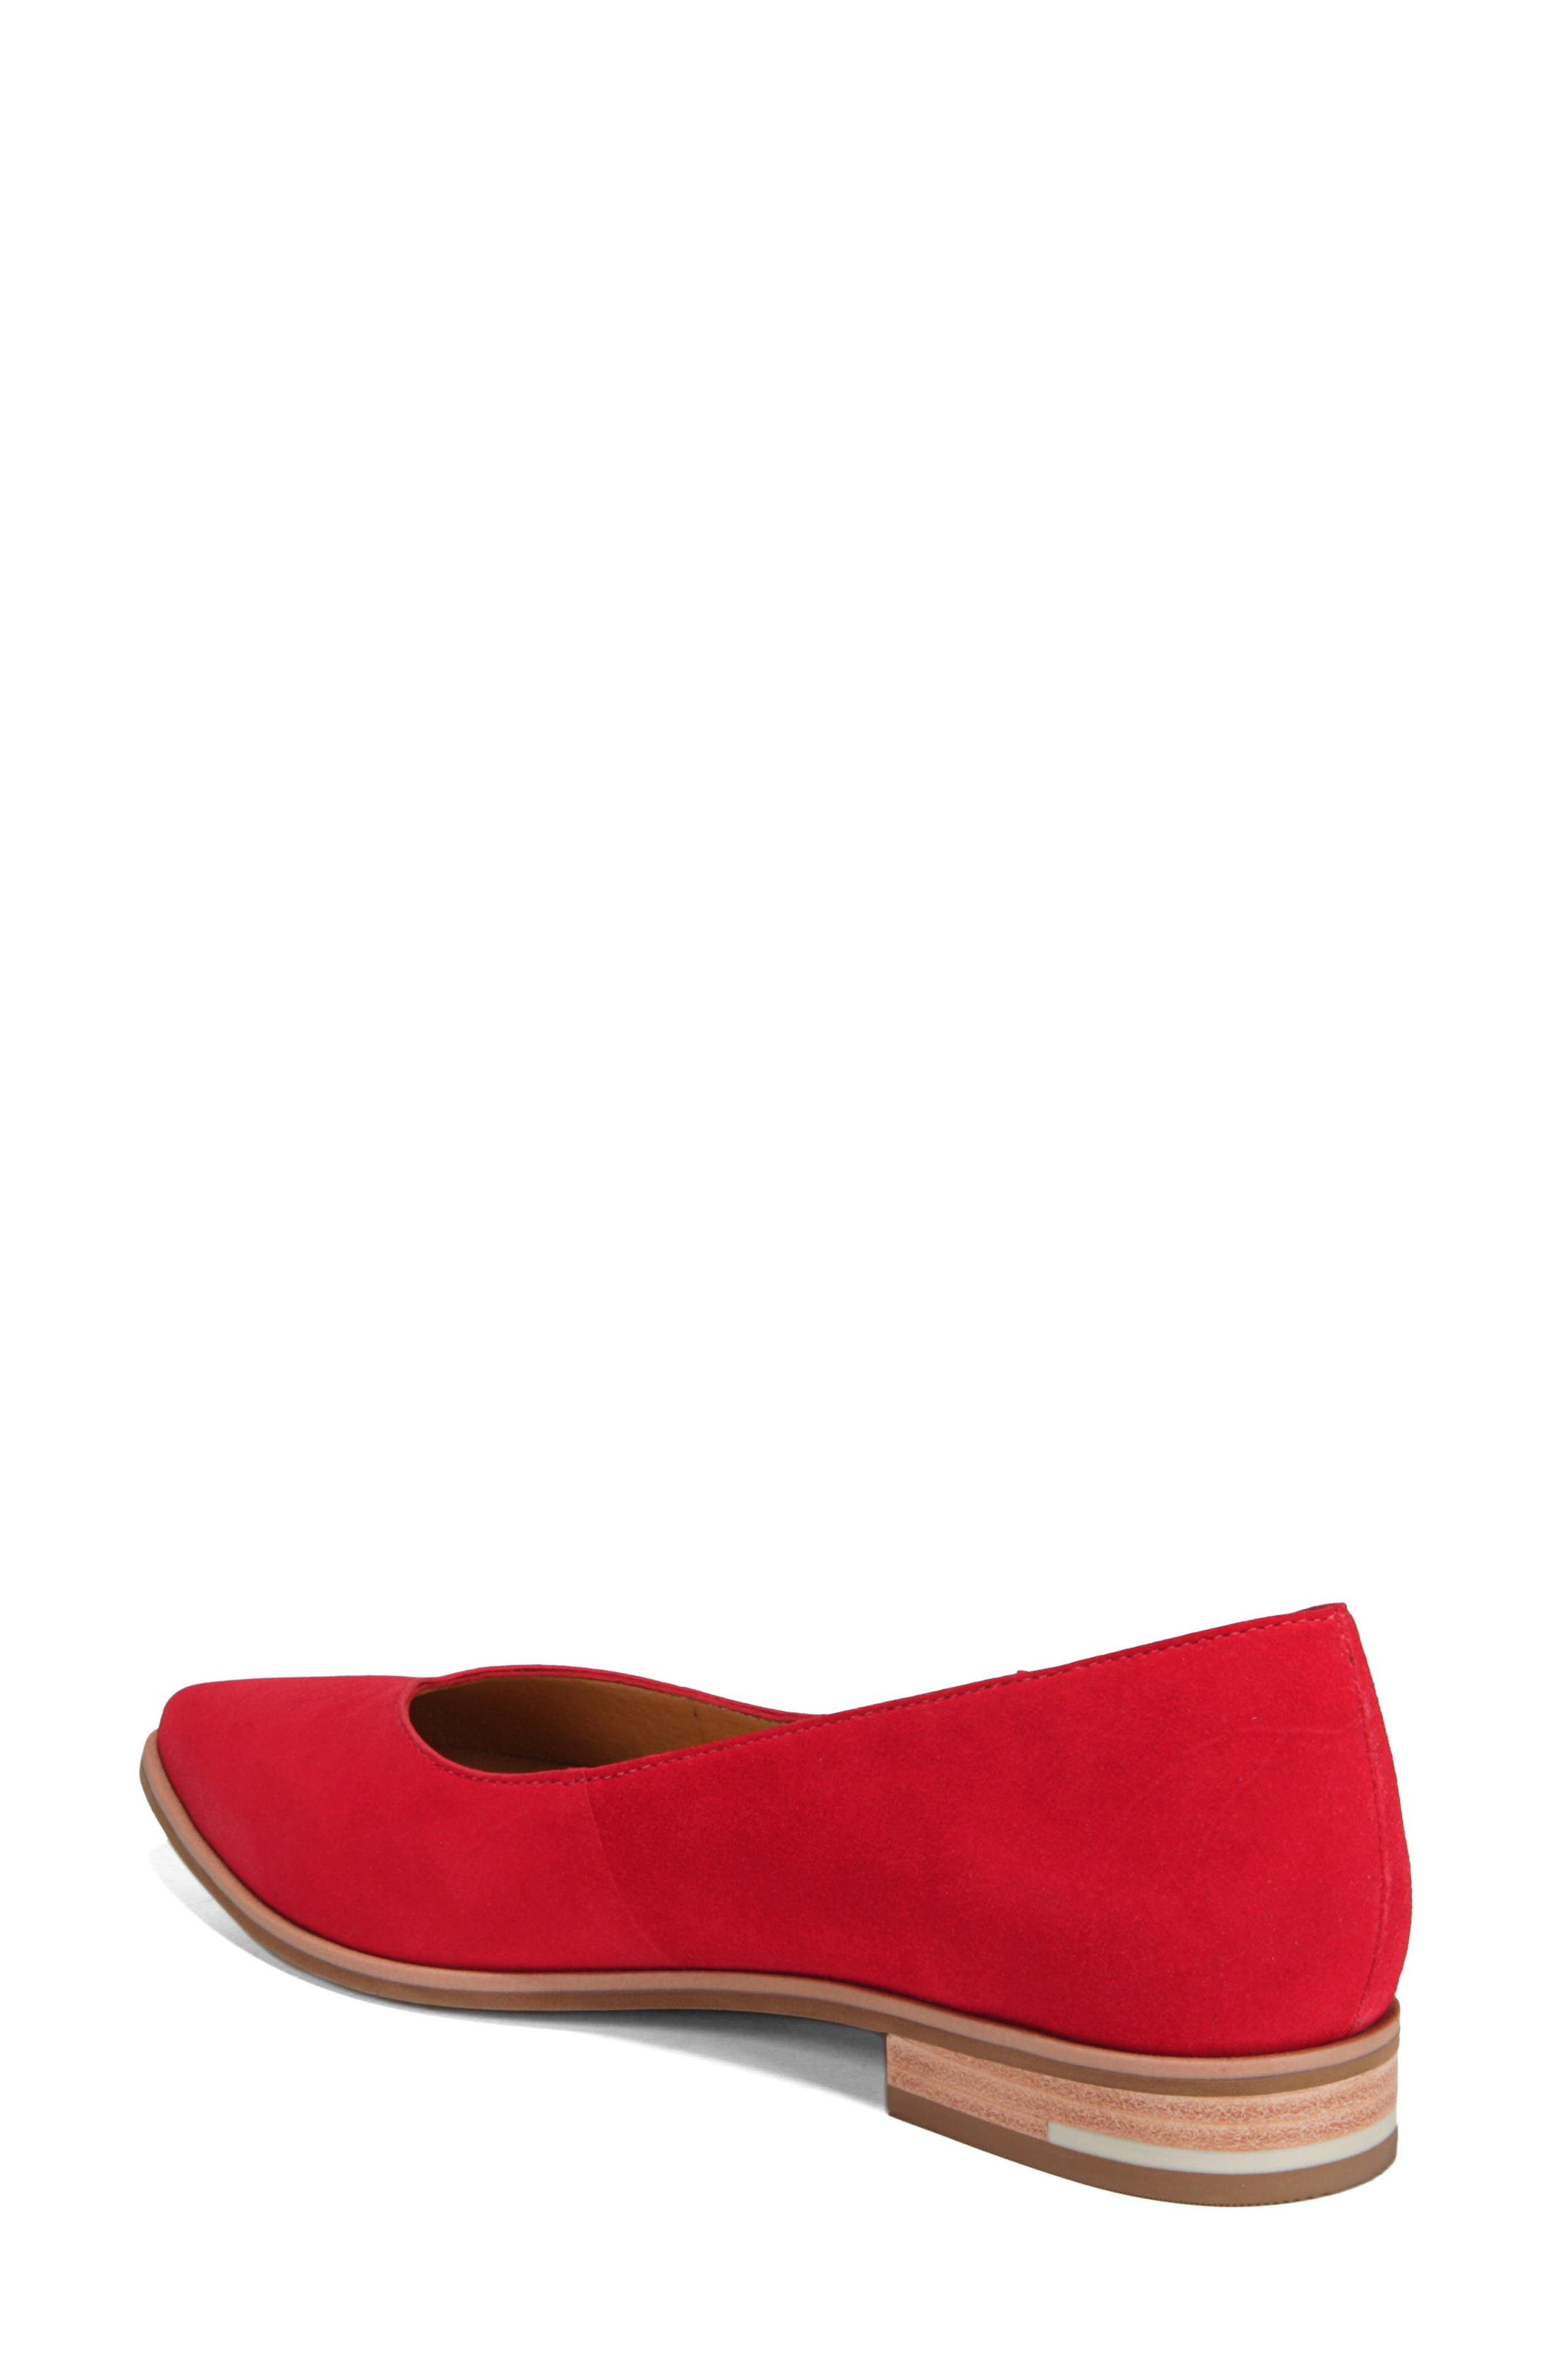 Dr. Scholls Flair Flat,                             Alternate thumbnail 2, color,                             RED LEATHER